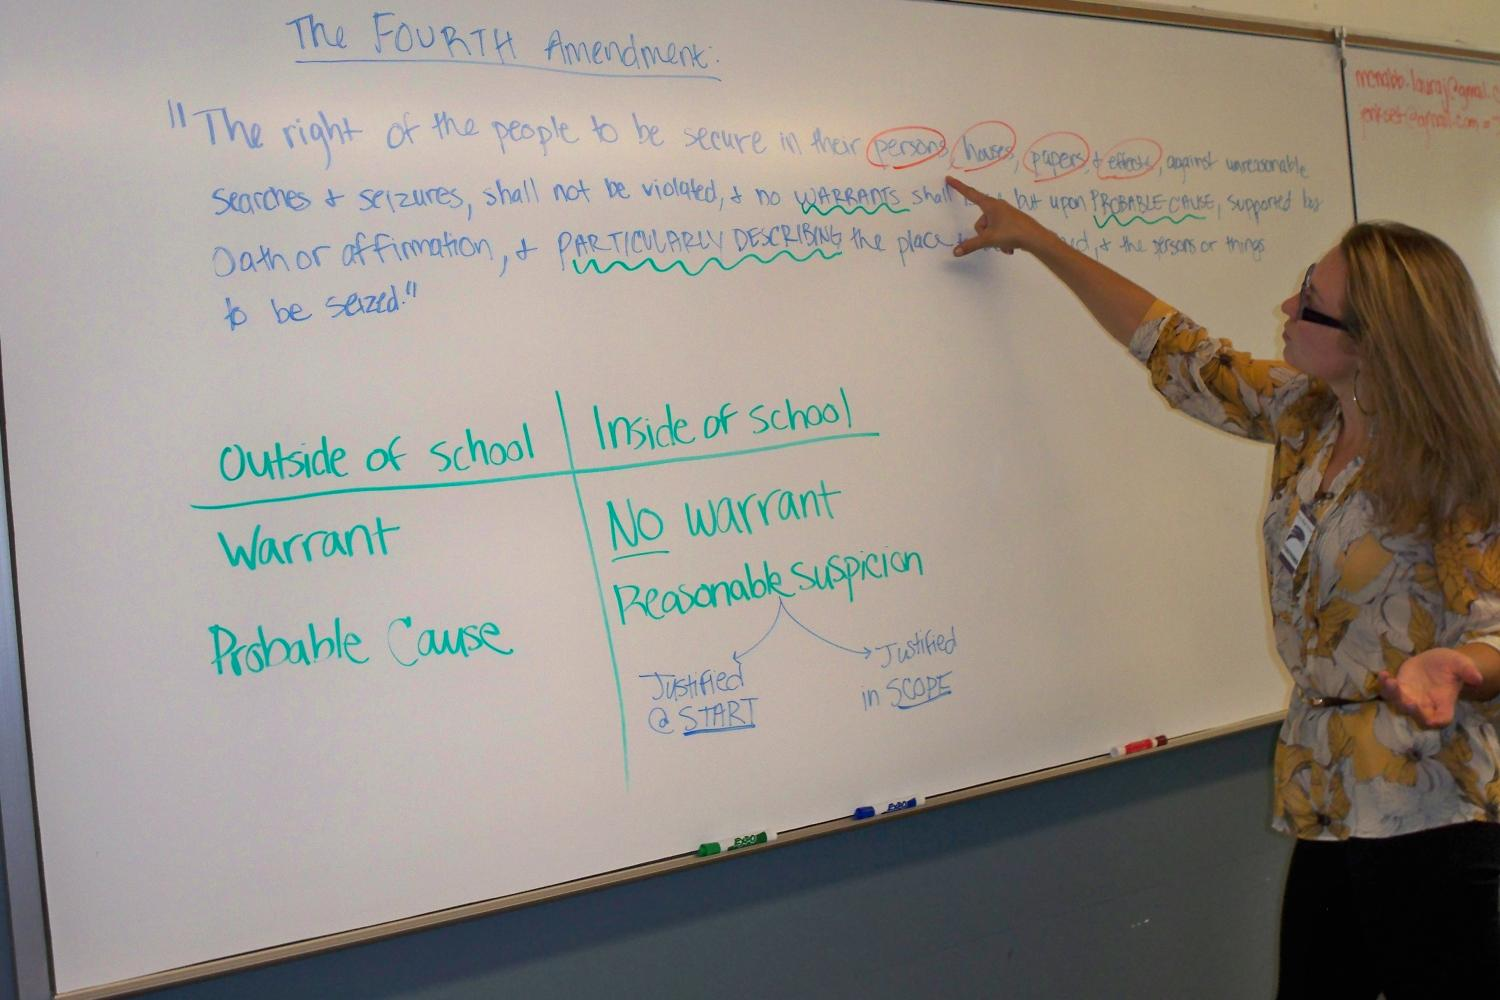 Law student teaching about the Constitution